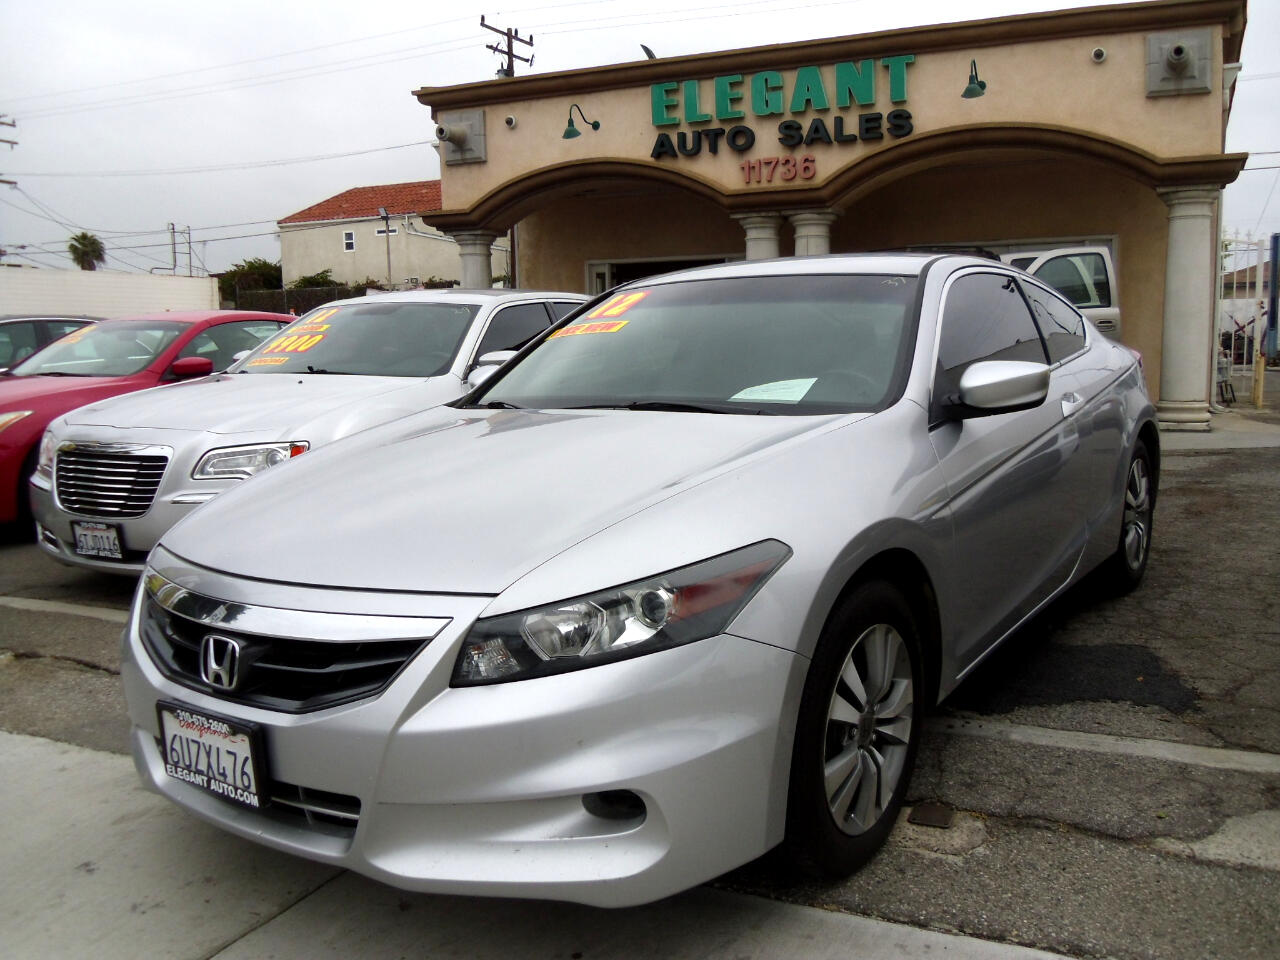 Buy Here Pay Here Cars for Sale Hawthorne CA 90250 Elegant